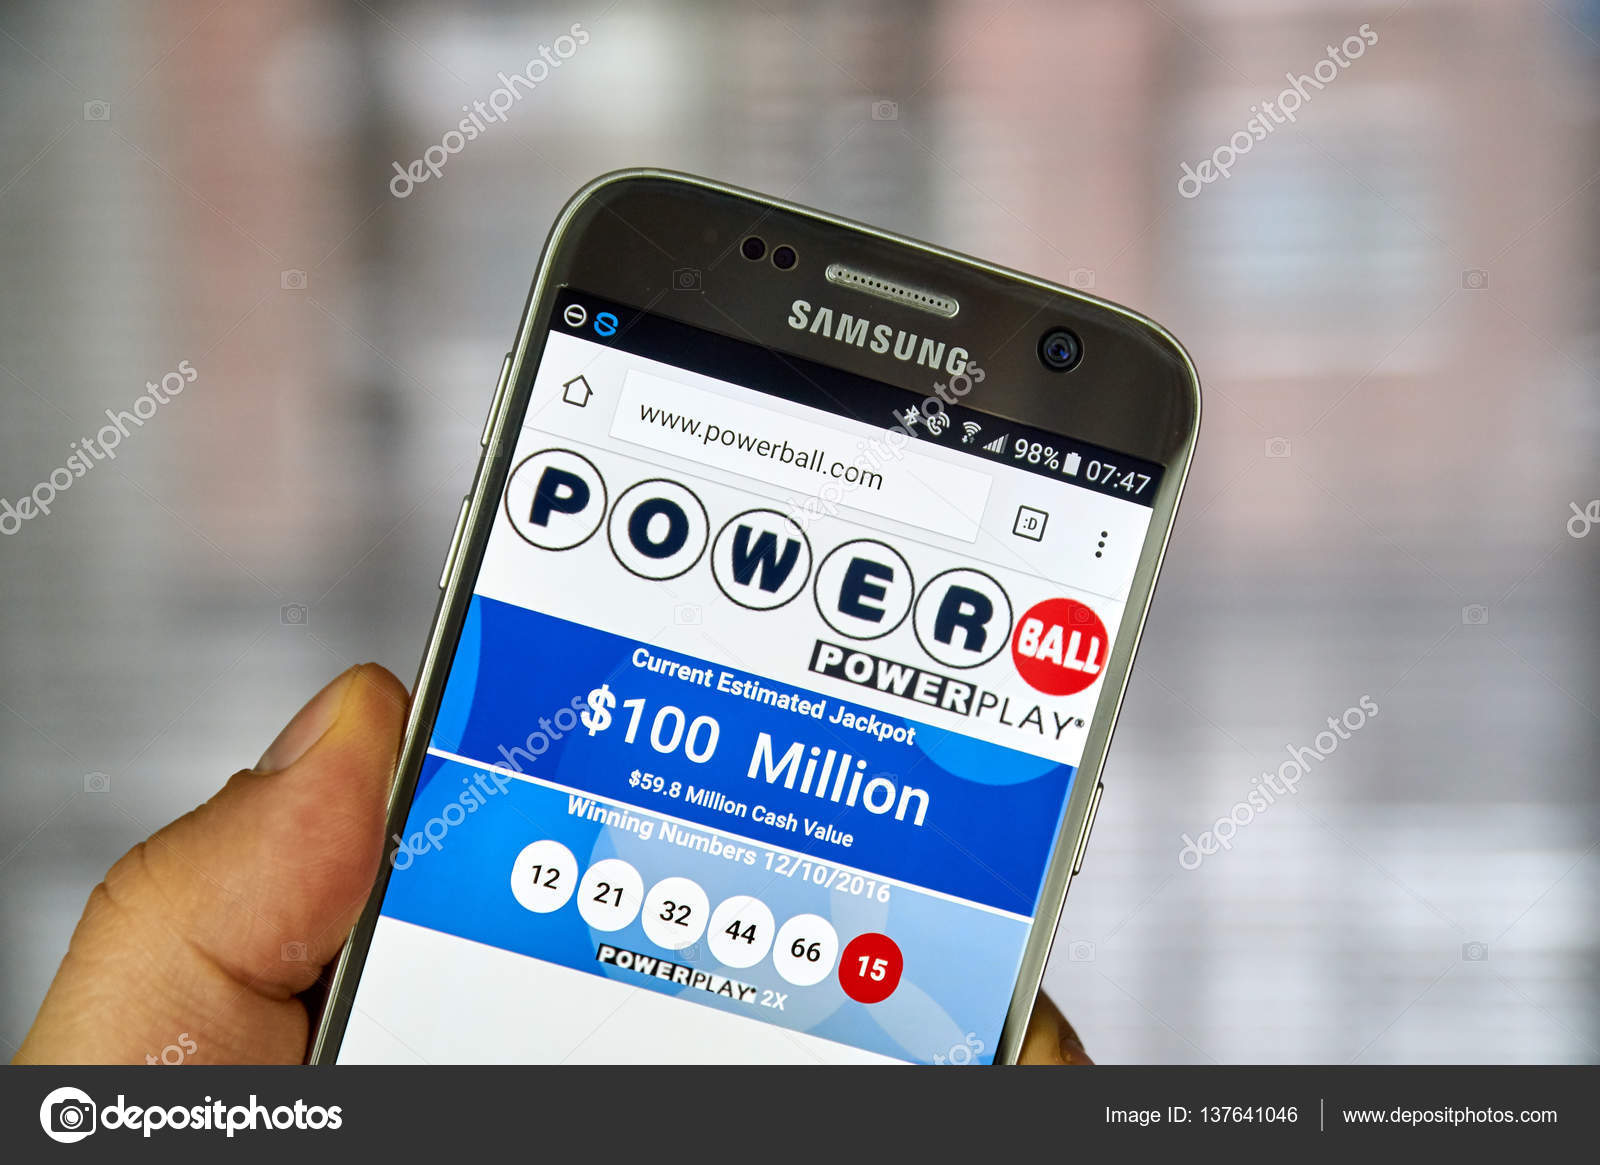 133 Powerball Stock Photos, Images | Download Powerball Pictures on  Depositphotos®